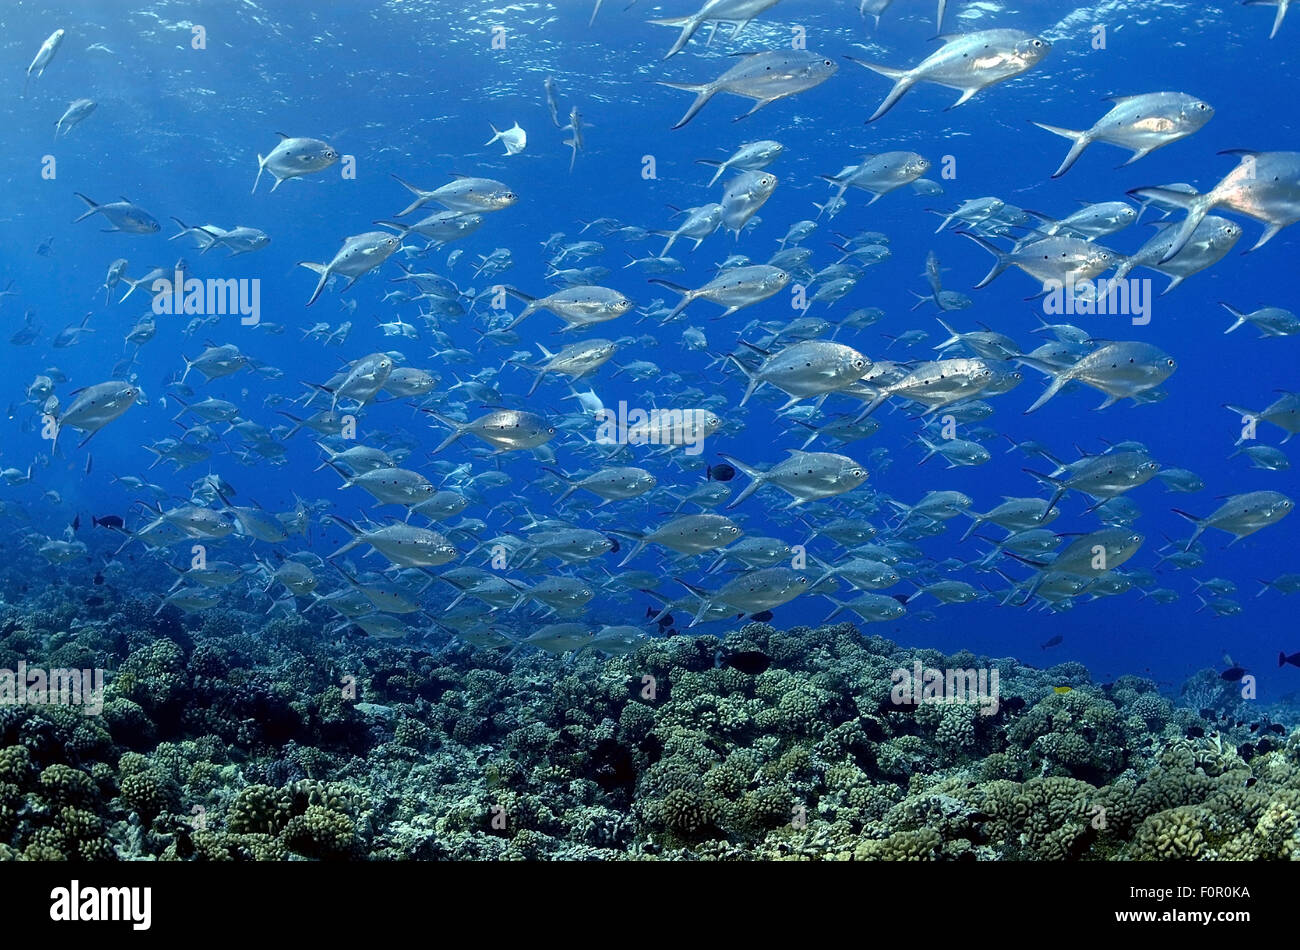 BIG SCHOOL OF POMPANO SWIMMING ON CORAL REEF - Stock Image